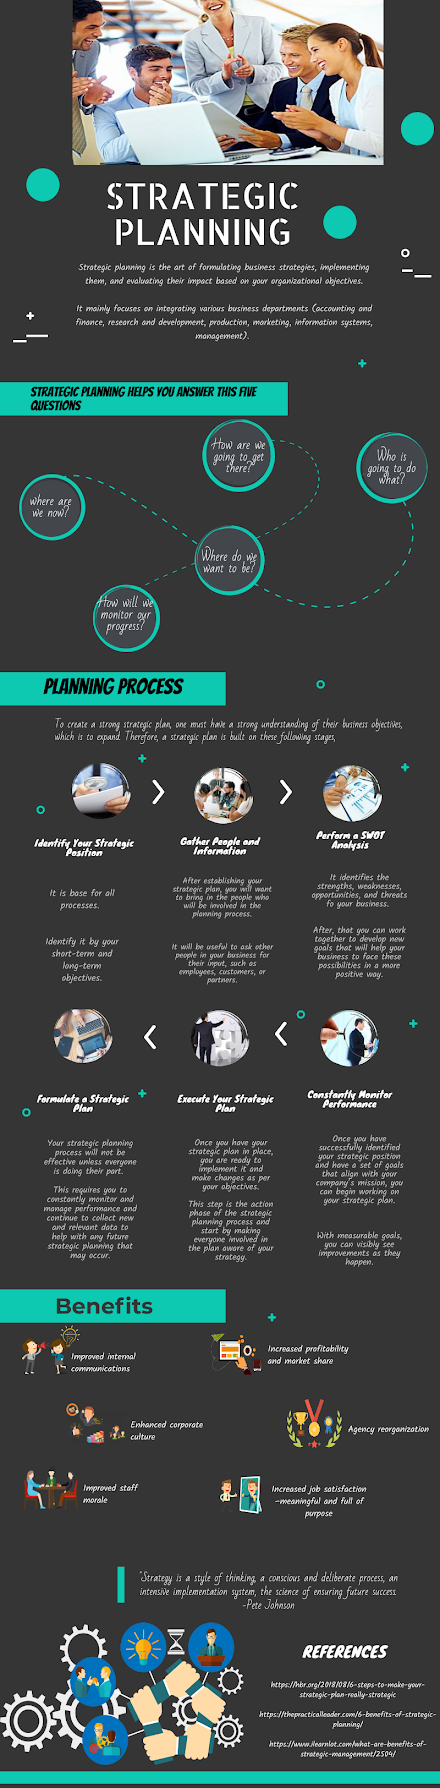 Business Growth Strategies: Check Out The Top 4